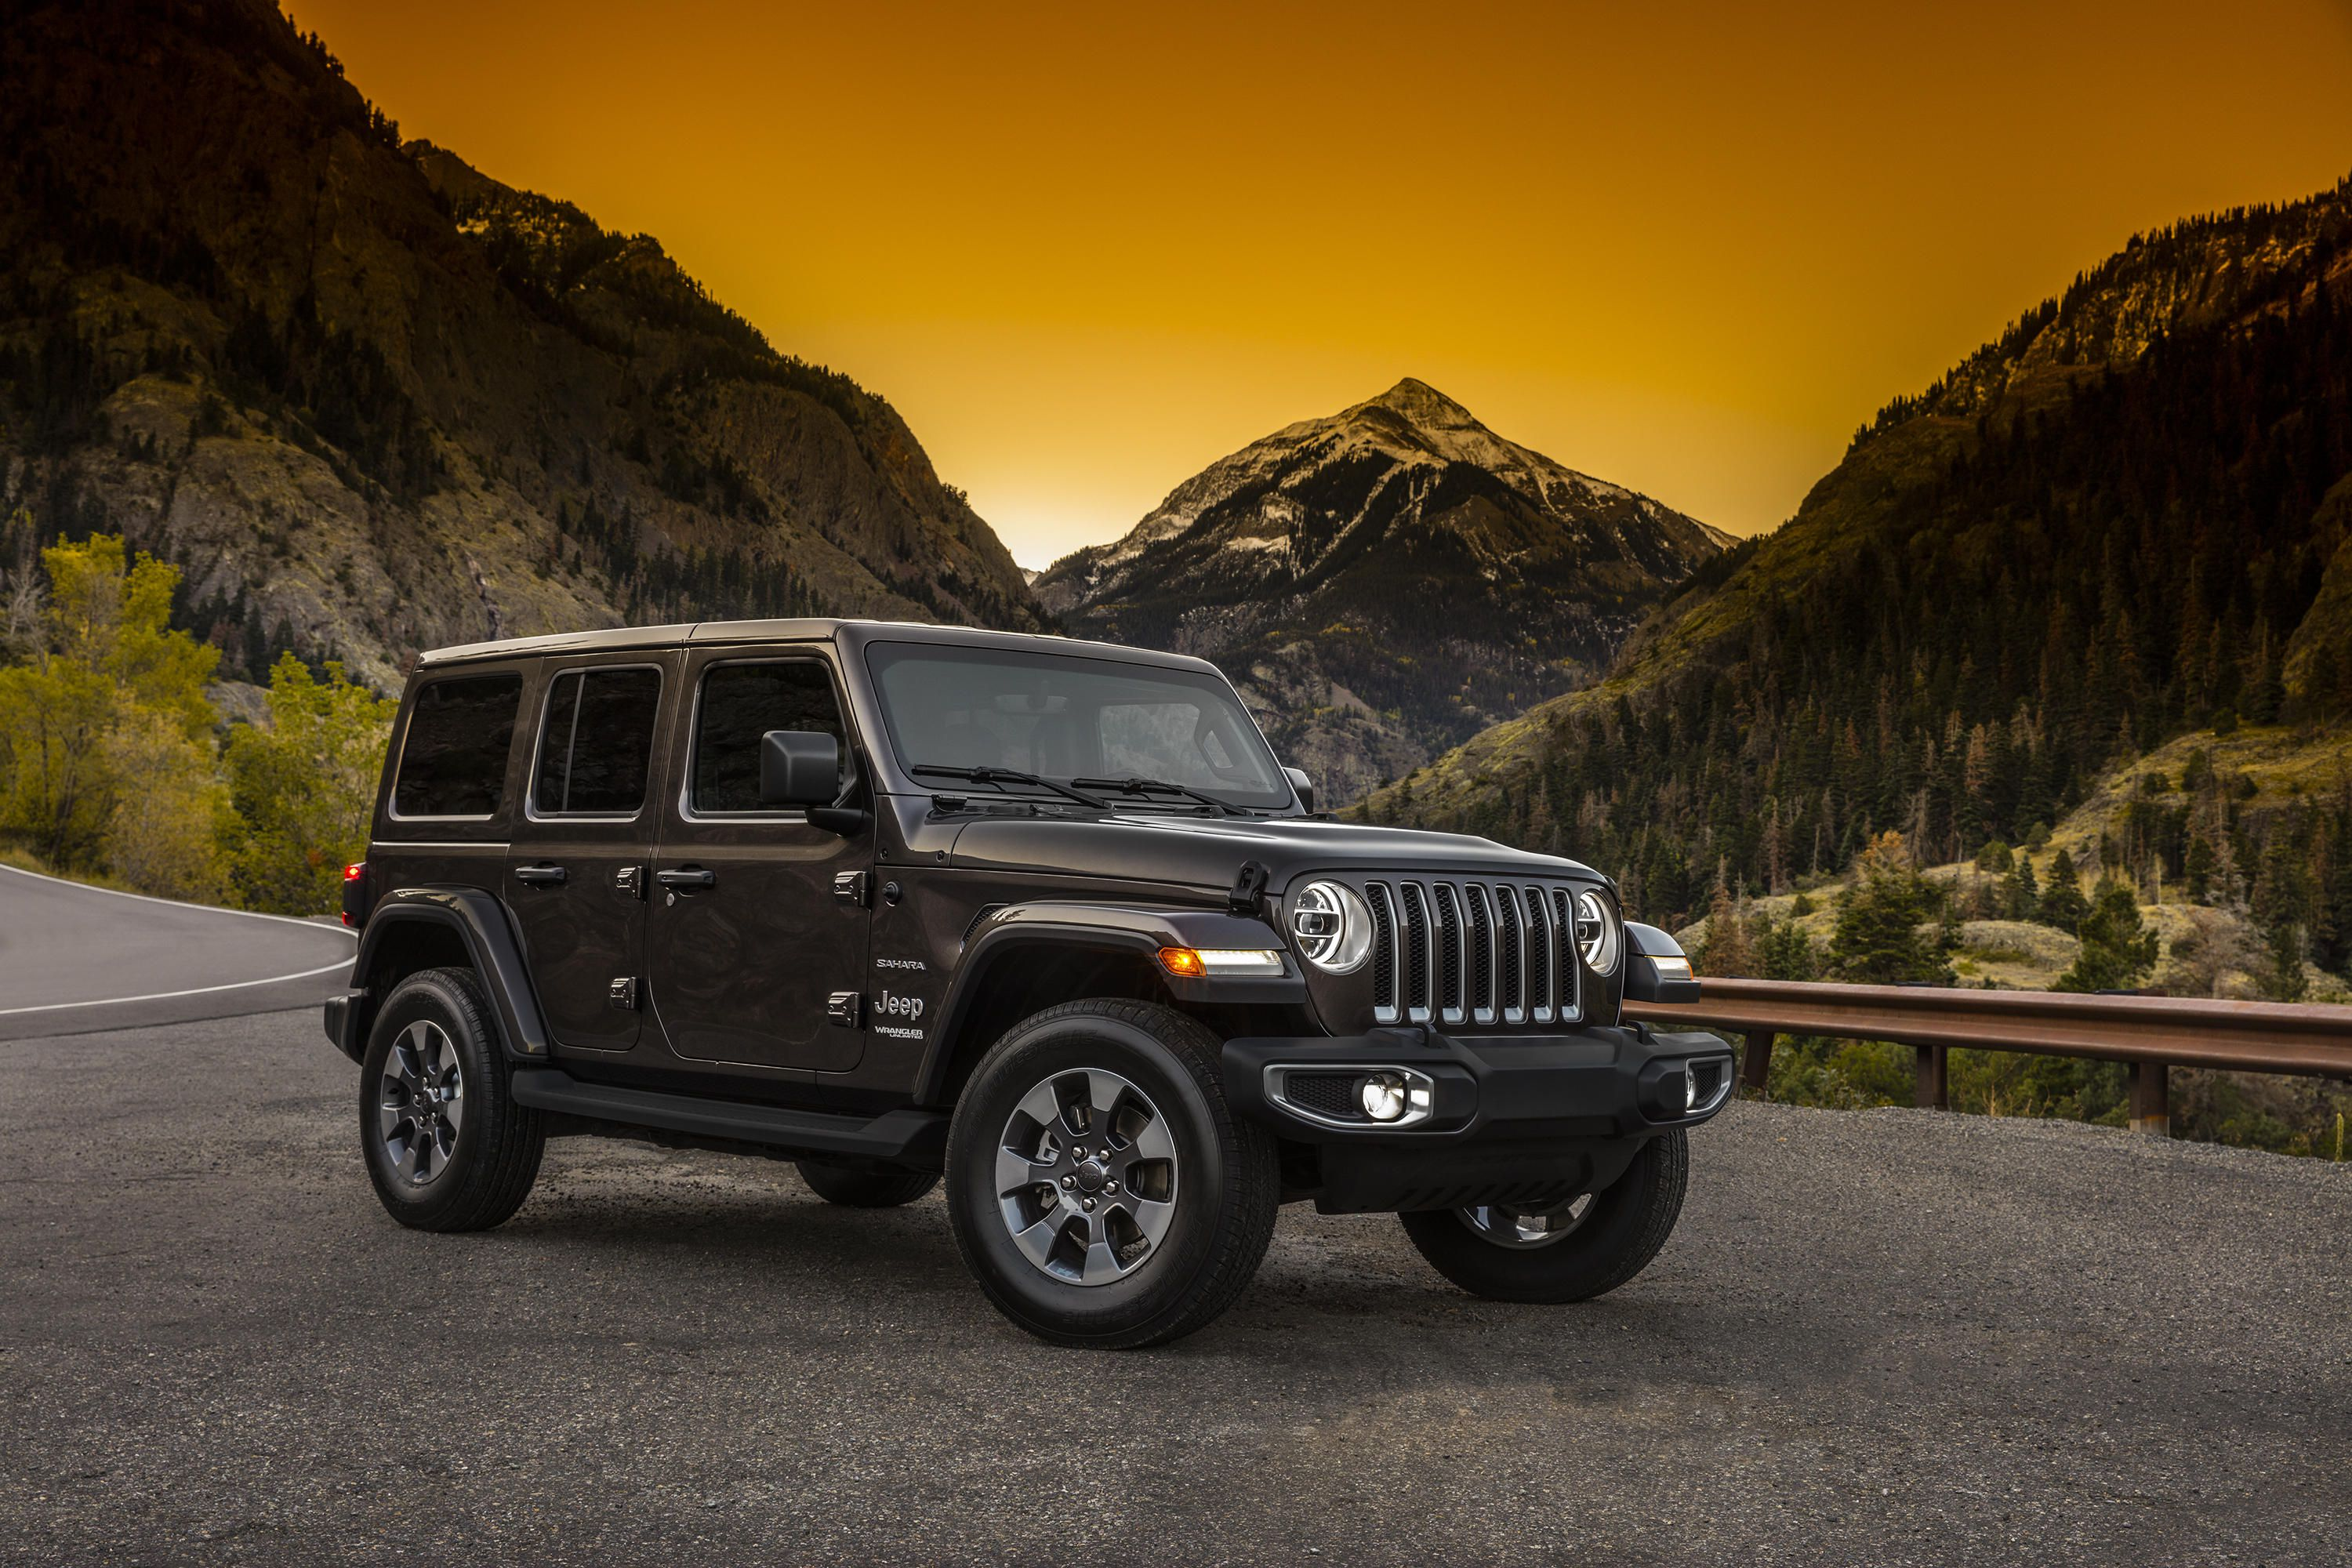 First Official 2018 Jl Wrangler Preview Images 2 4 Door In